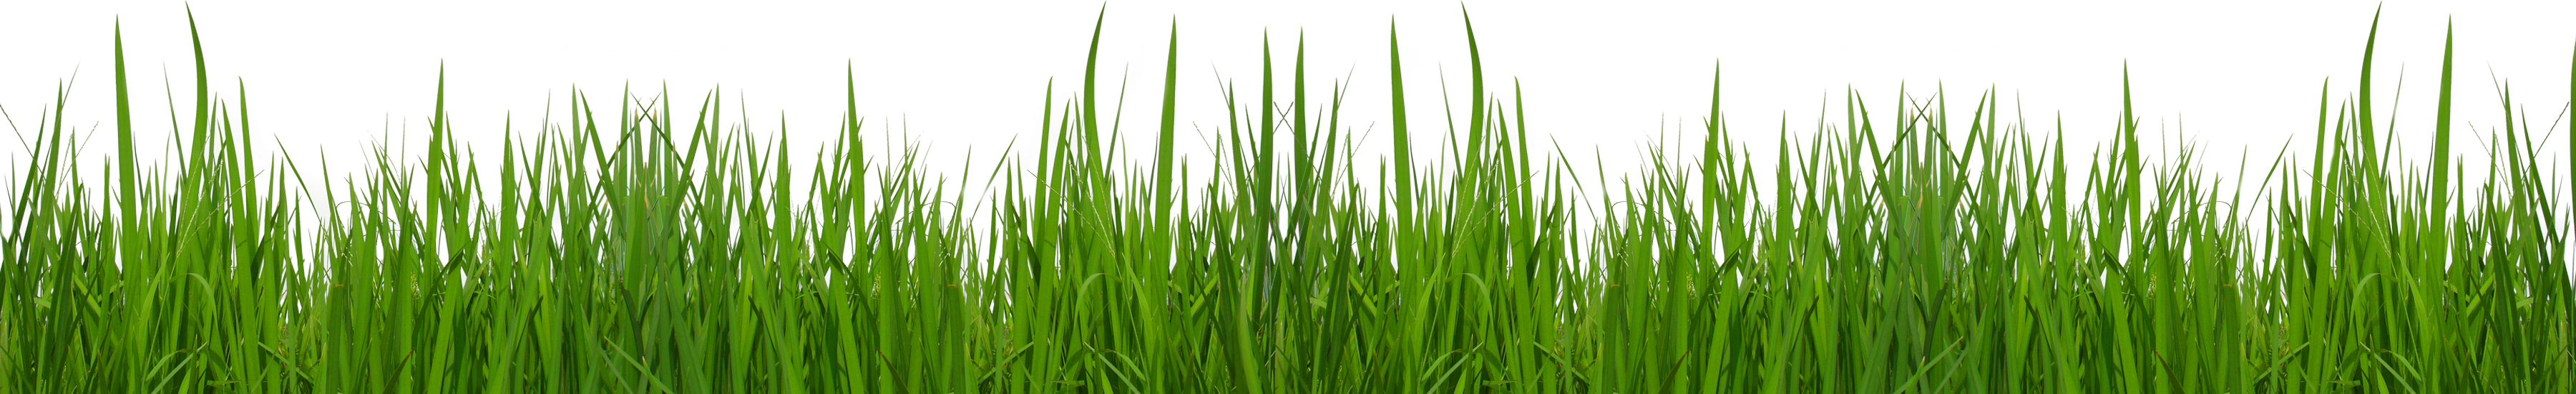 Football grass clipart clipart black and white stock Grass Ground With Flowers Clipart Picture - peoplepng.com clipart black and white stock